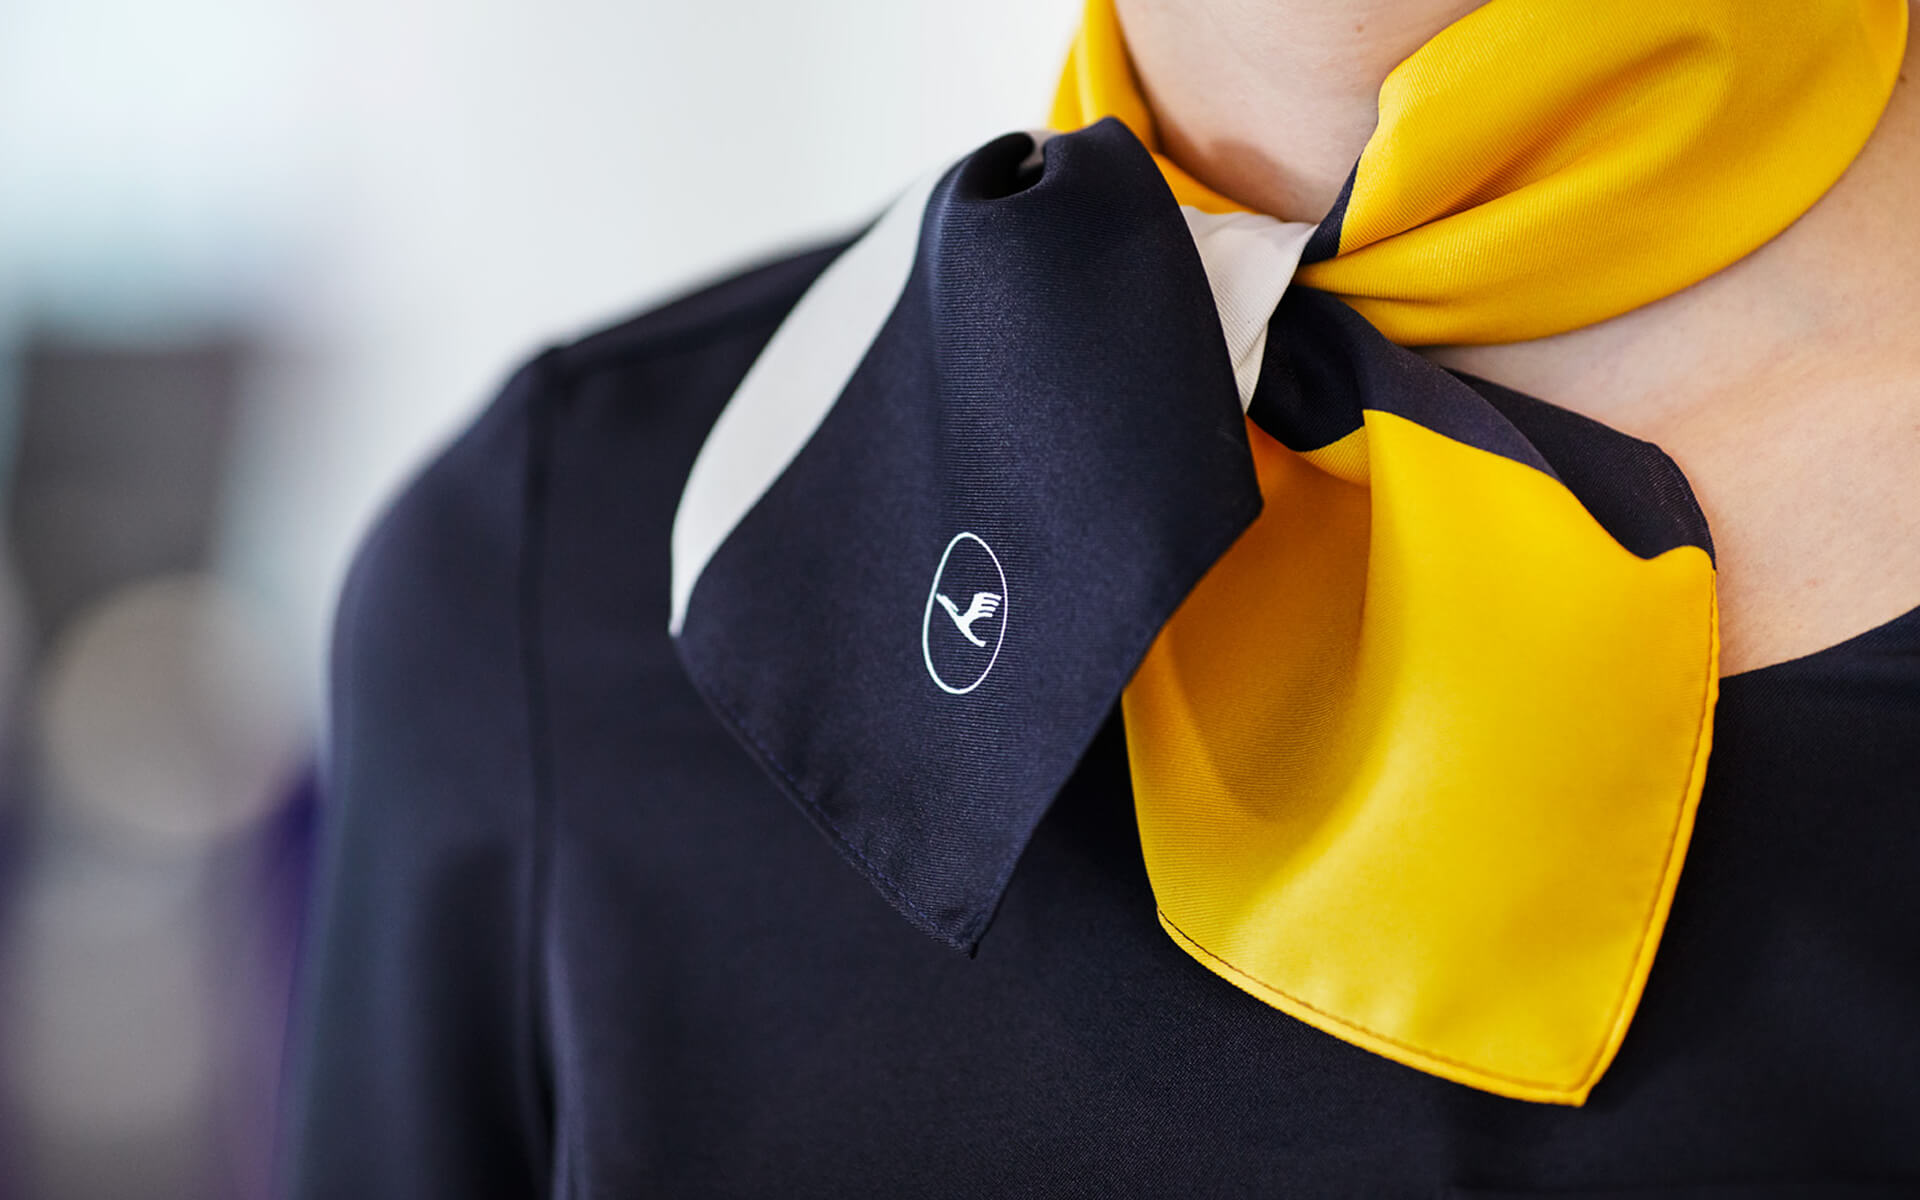 Lufthansa Corporate Design 2018, Redesign, Corporate Fashion